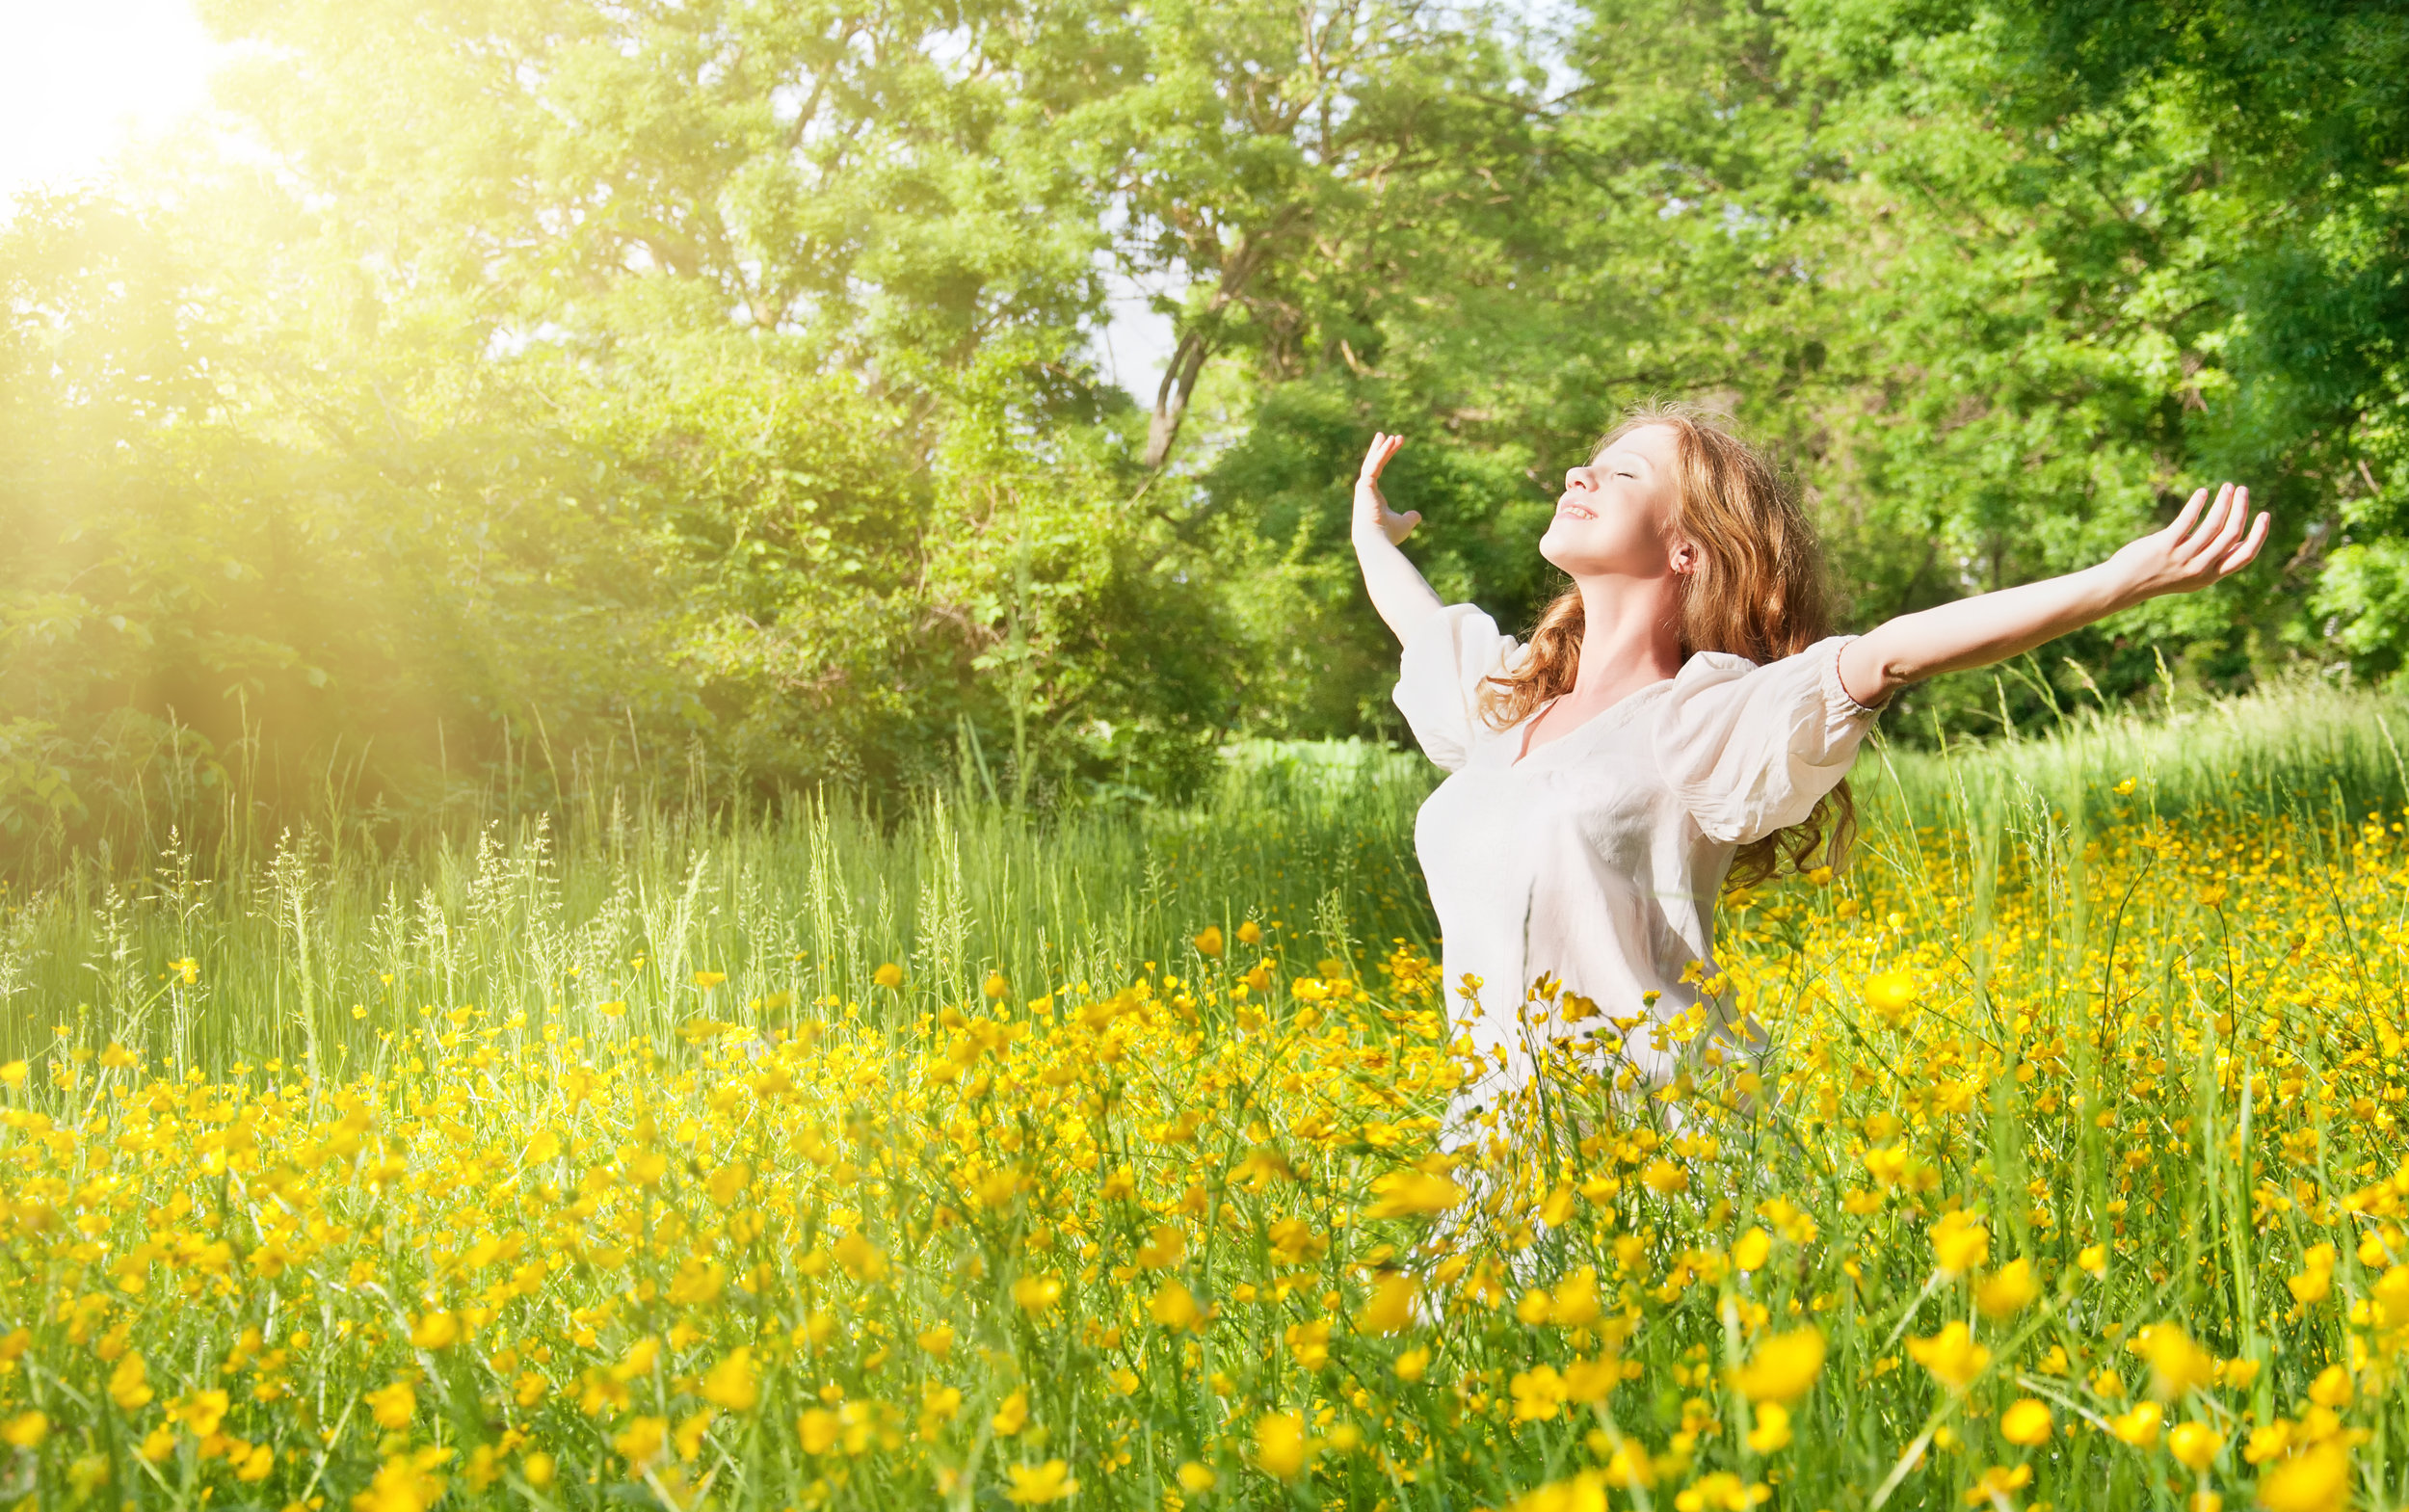 PUBLISHER'S LETTER    Healthy Living Now   Written by Lori Mitchell  Age is just a number.  Growing older gracefully is an attitude, a mindfulness, with some simple attention to our body, our mind and our spirit. Here is to longevity.      Read More...